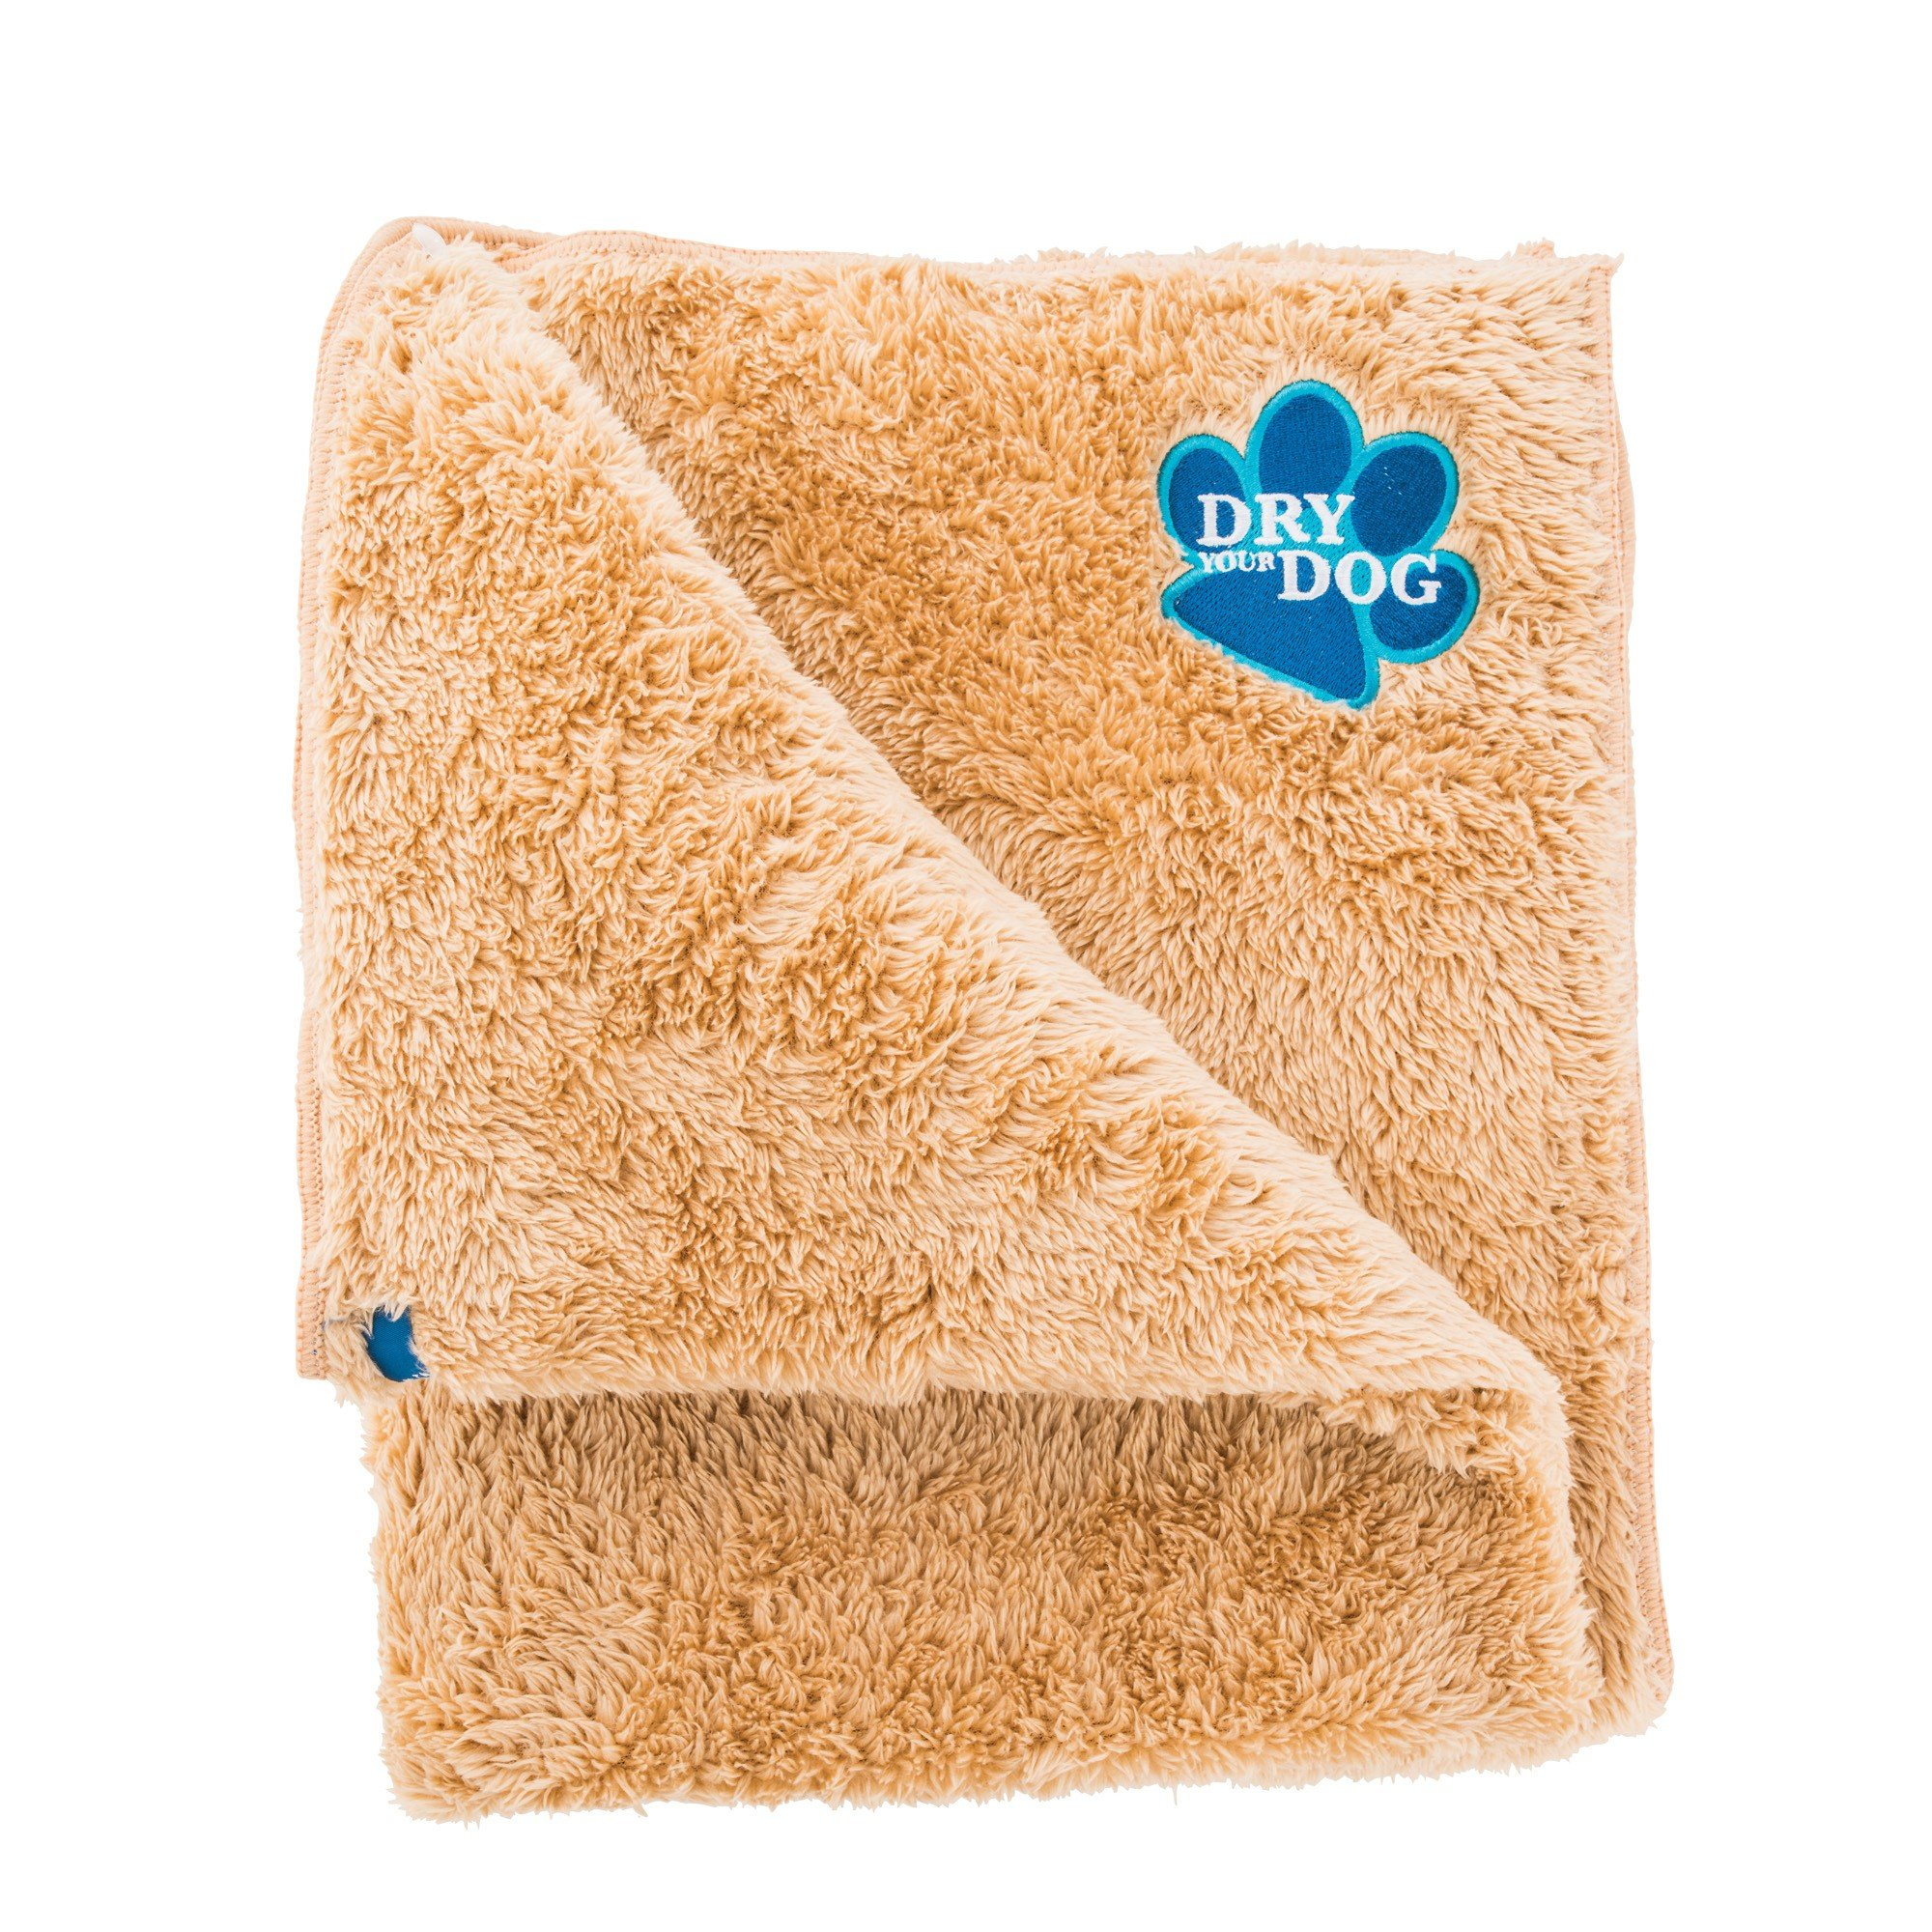 Upper Canada Soap Dry Your Dog Microfiber Pet Quick Drying Towel, One Size by Upper Canada Soap